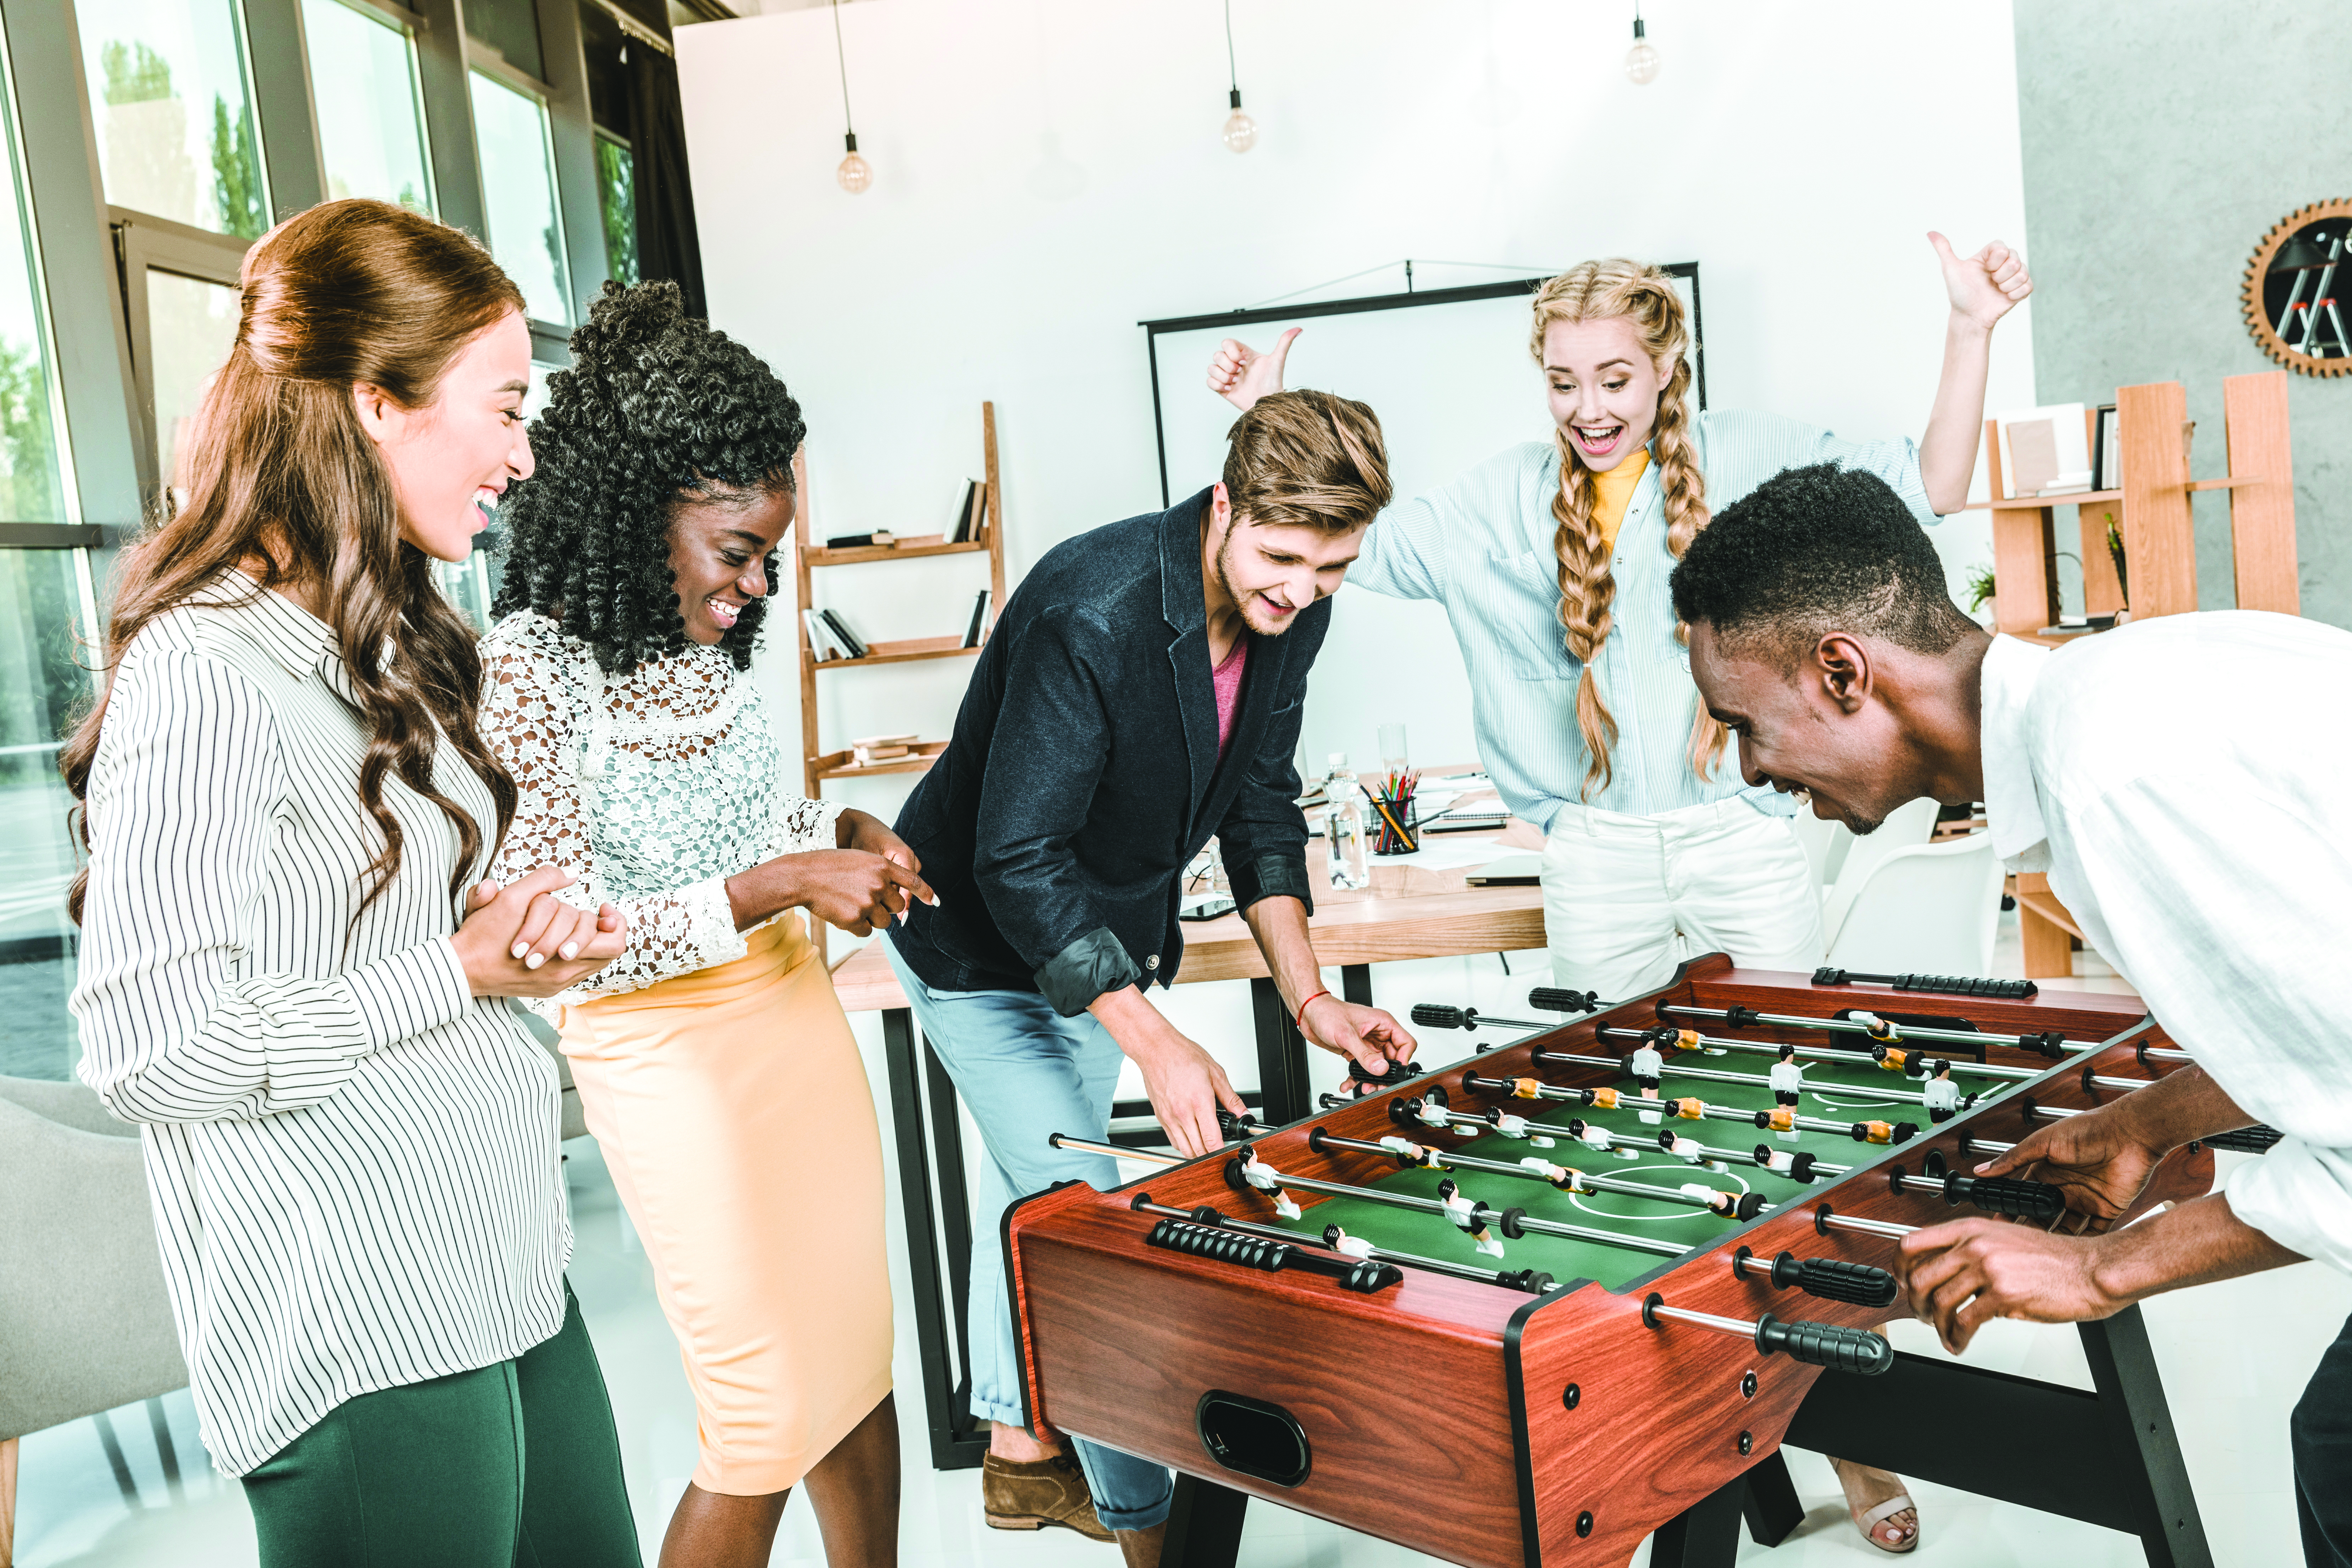 A group of younger guests enjoy playing games like table football in modern hotel lobbies.